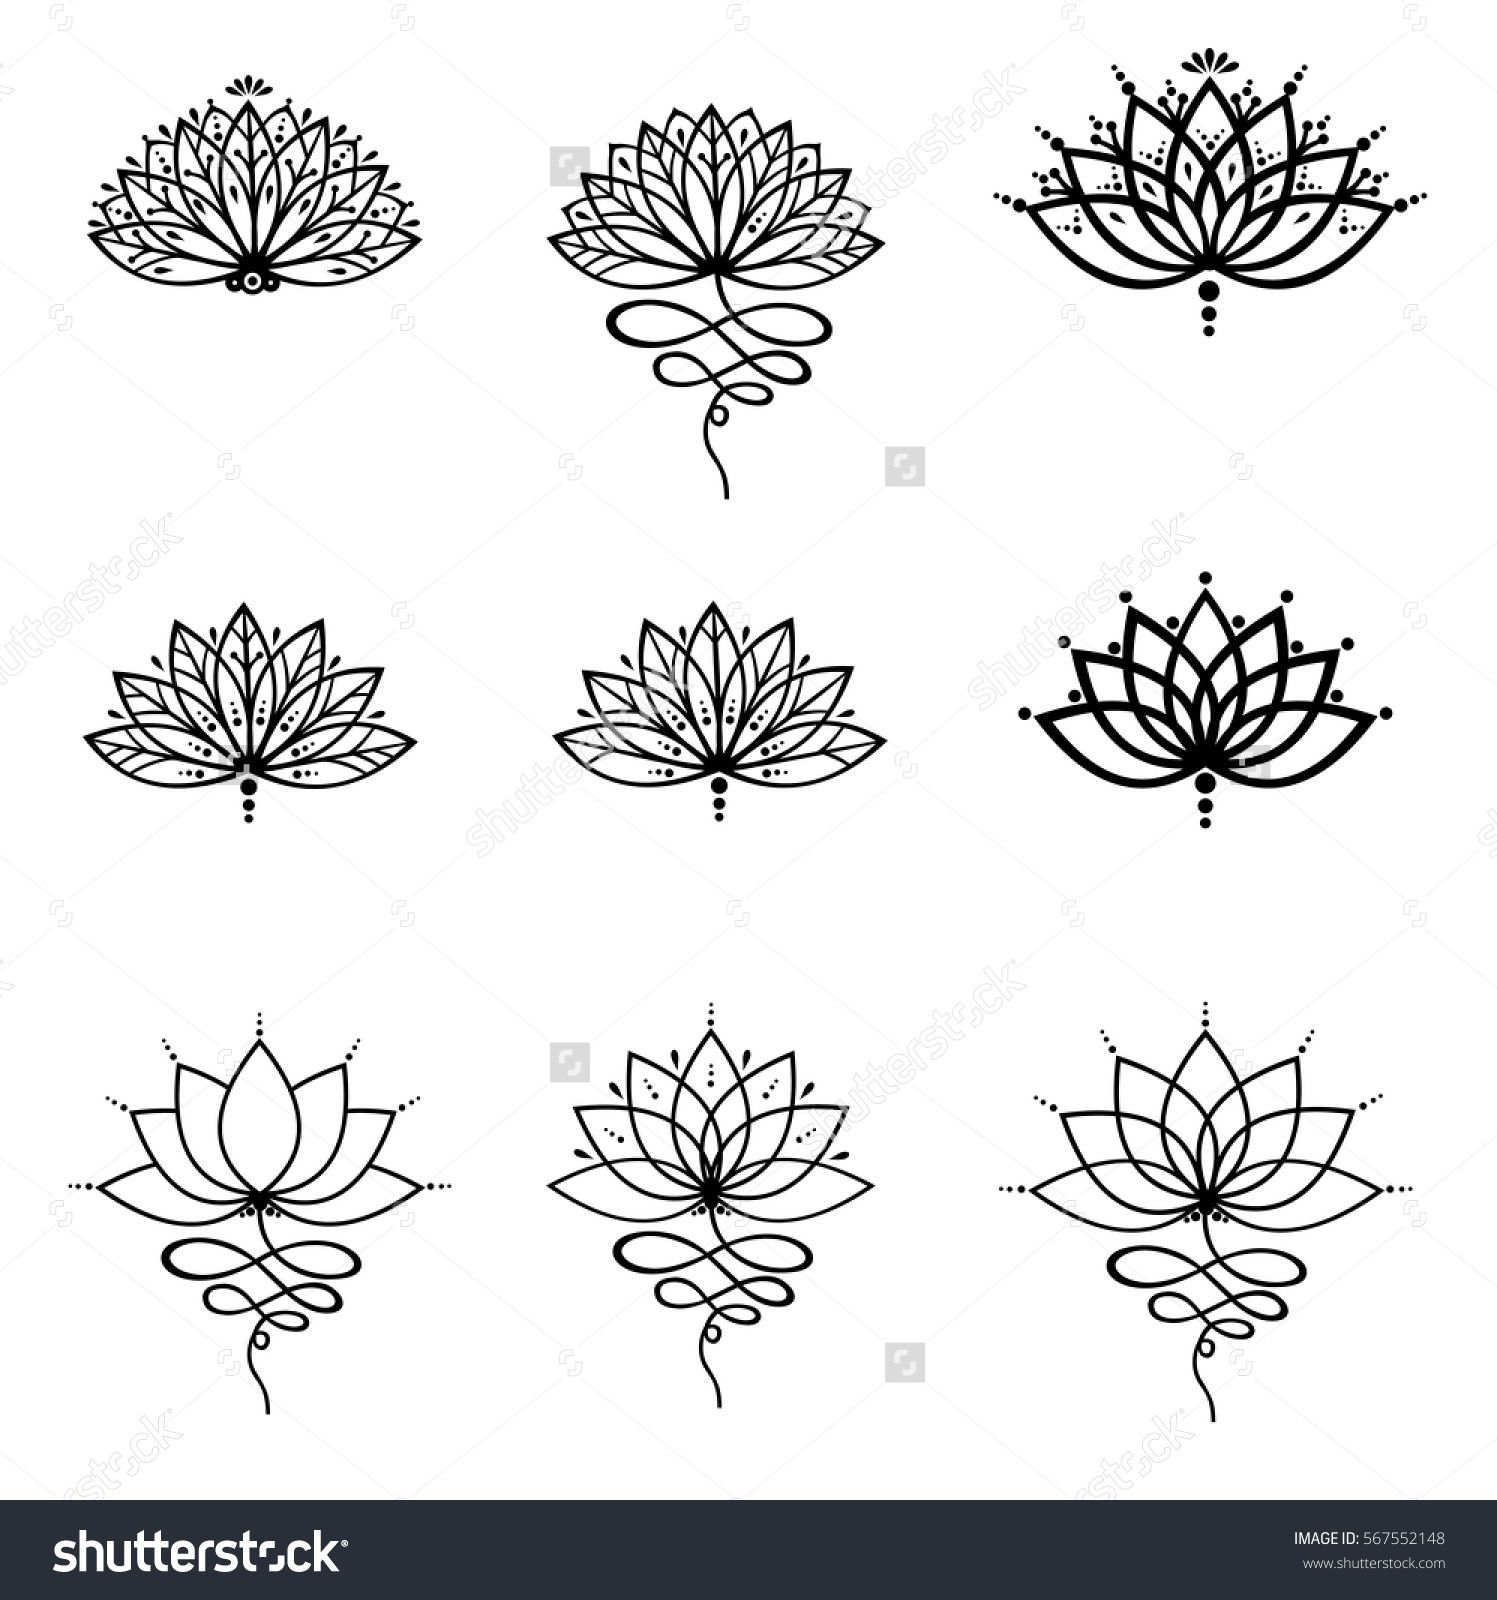 Lotus Flower Tattoo Female Lotus Tattoos Designs With Meaning In 2020 Lotus Tattoo Design Small Lotus Tattoo Tattoo Designs And Meanings